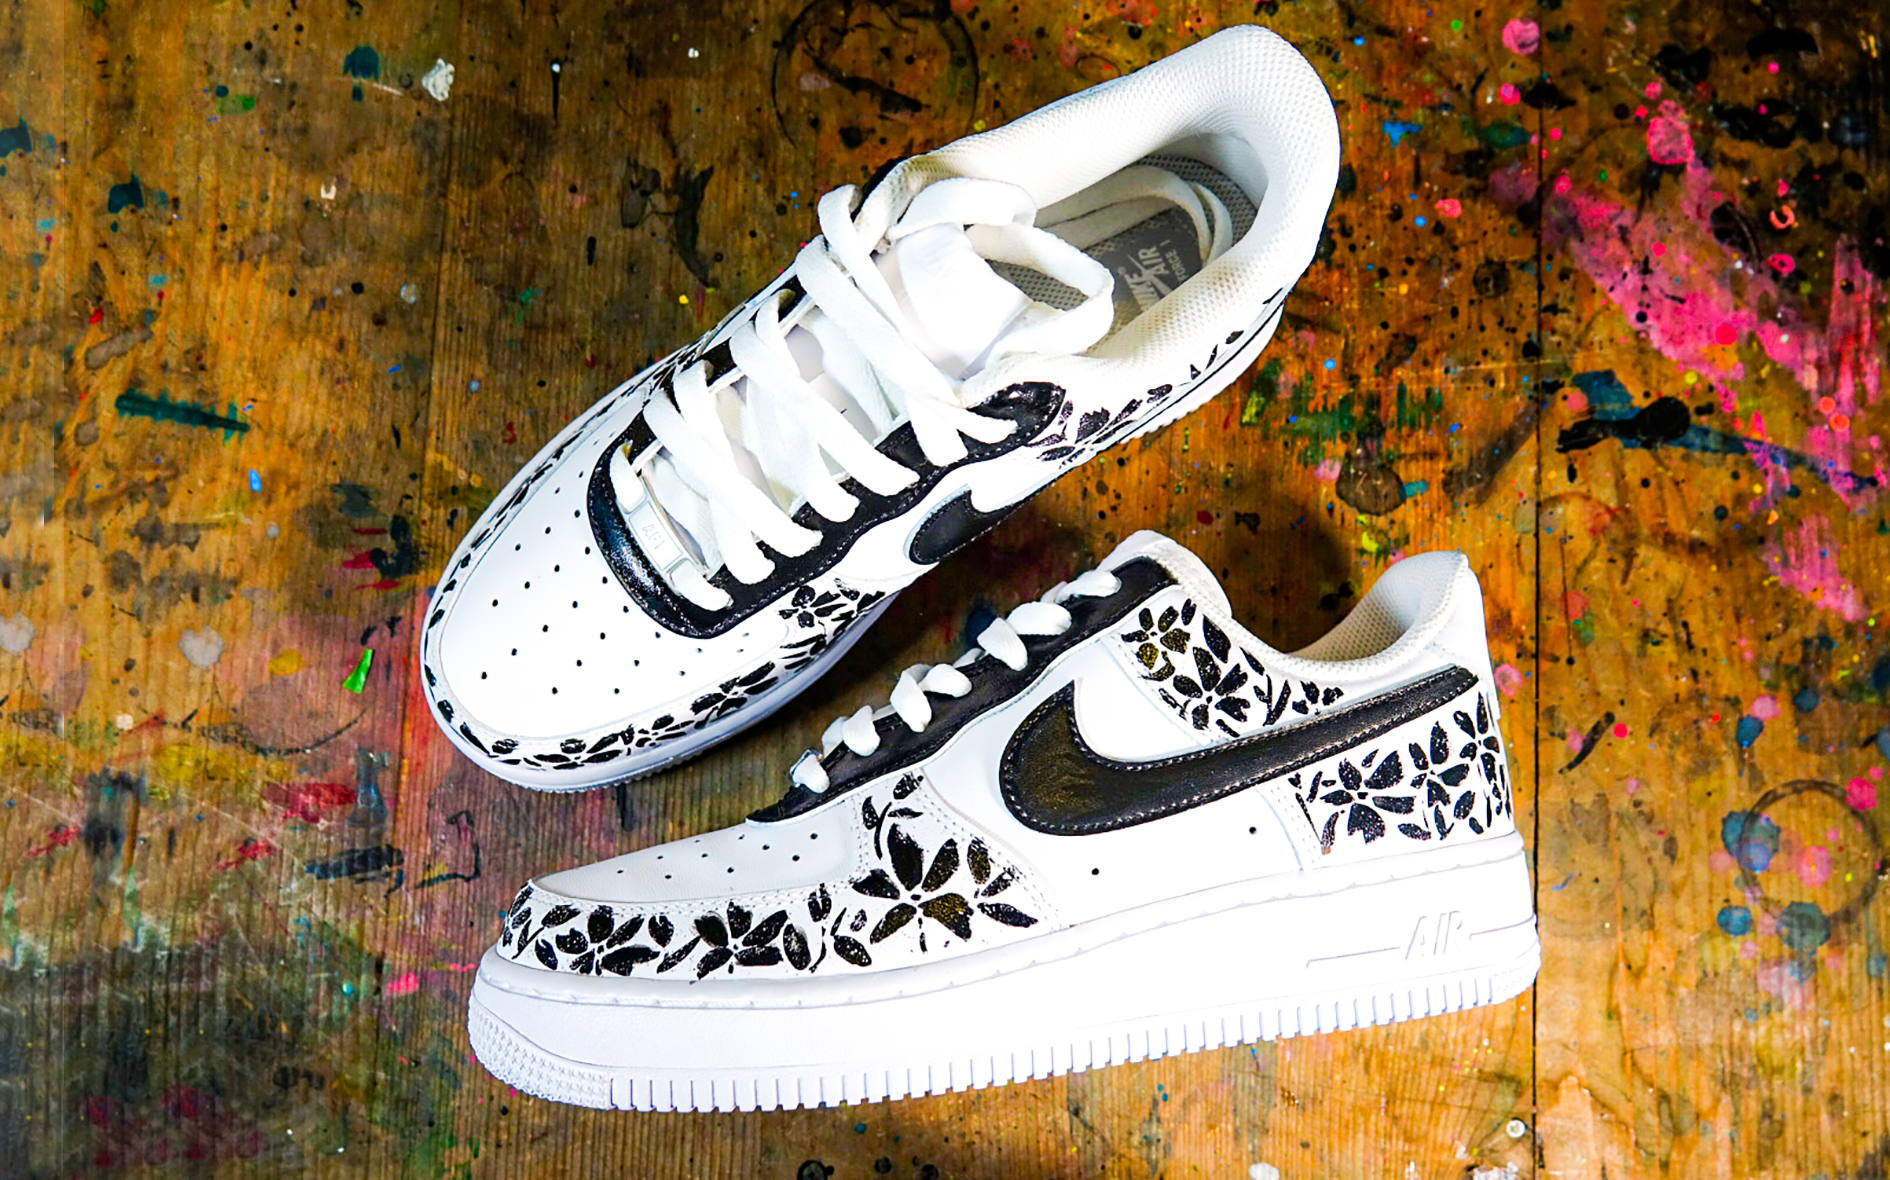 Custom sneakers with POSCA